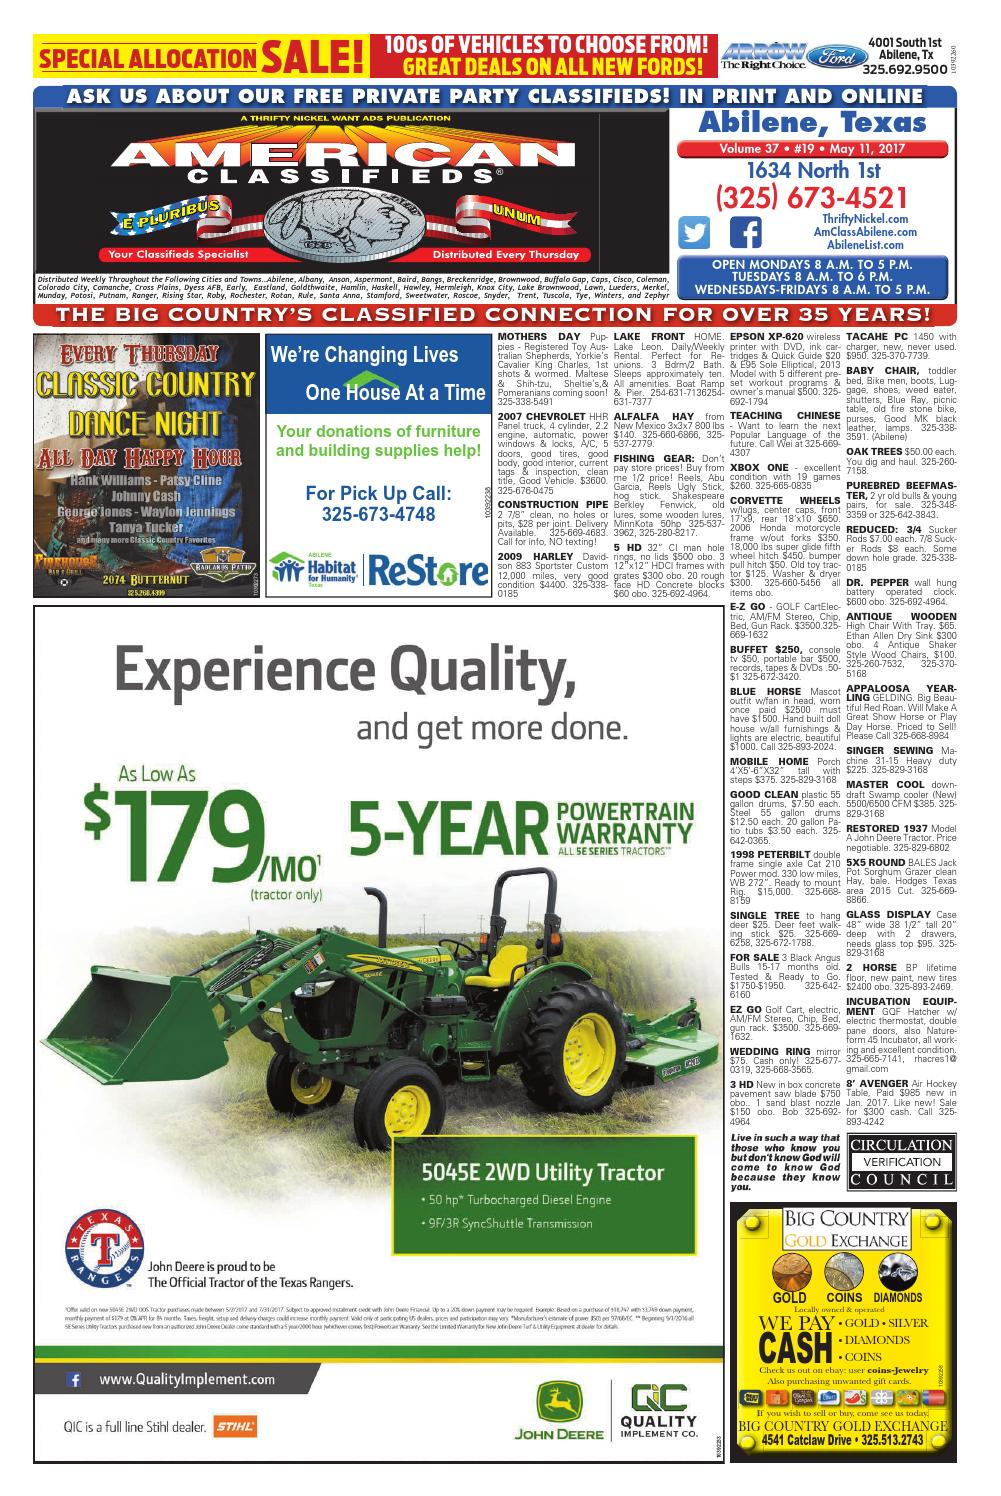 American Classifieds Abilene 05-11-17 by American